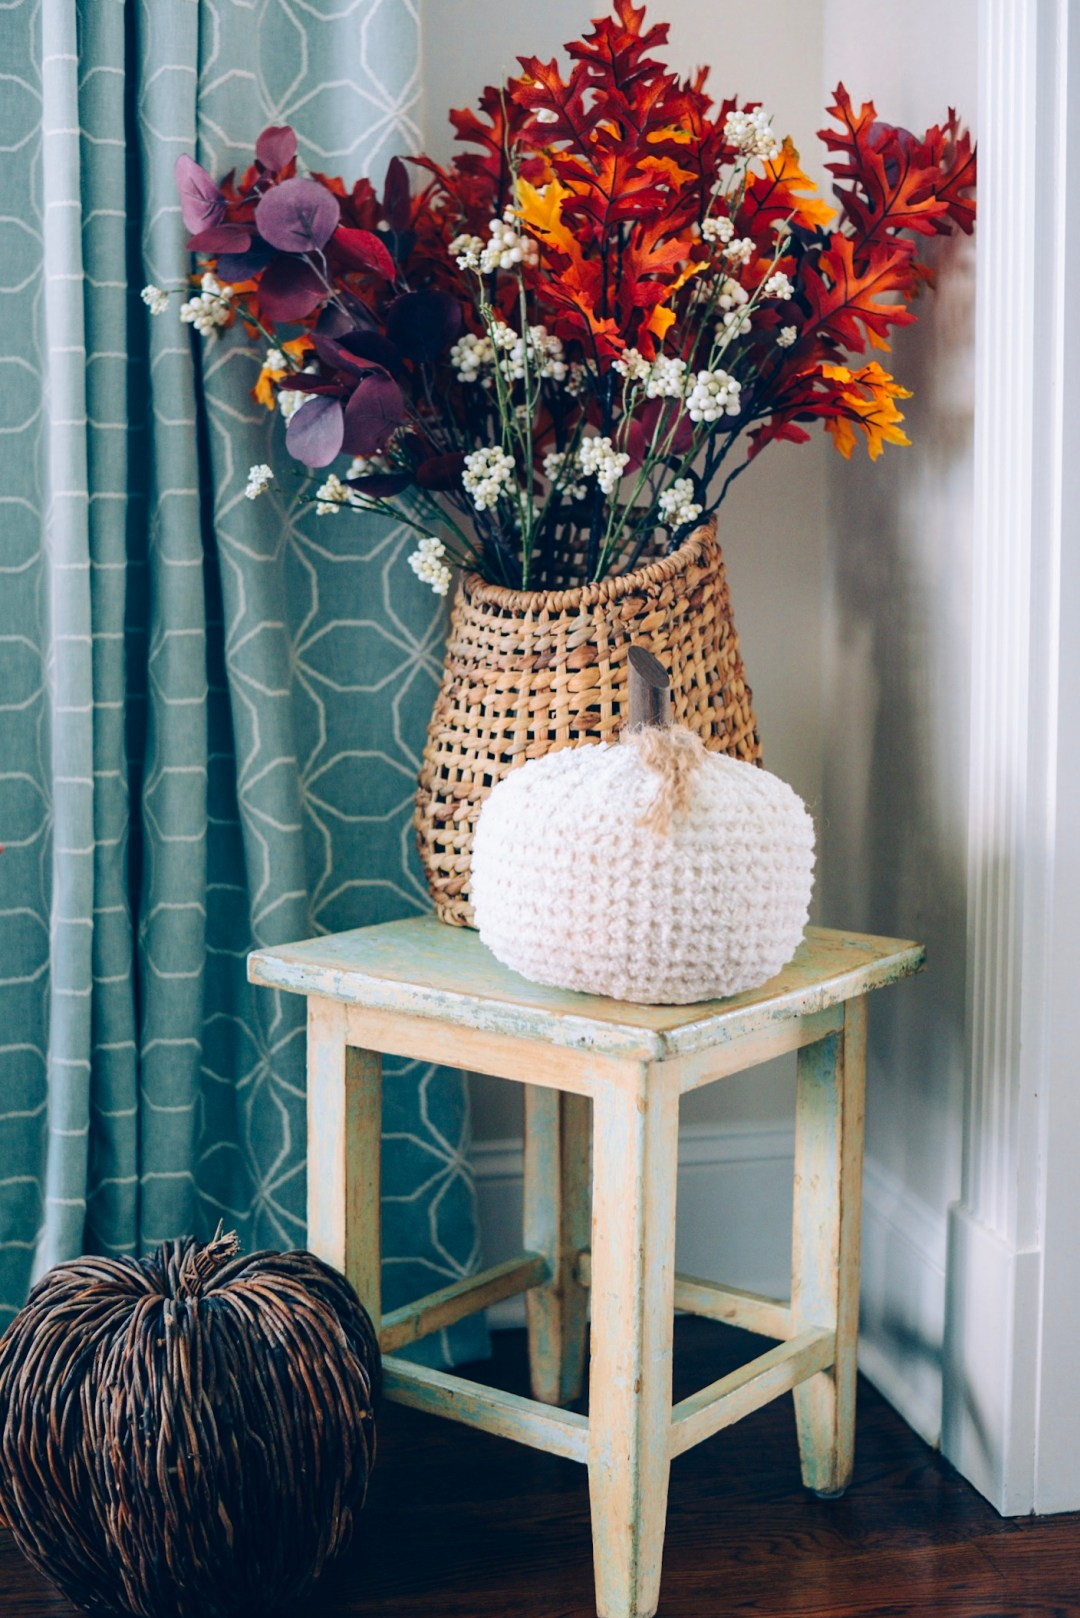 How I Decorated My Home Interior for Fall- target basket and faux fall foliage on a distressed stool